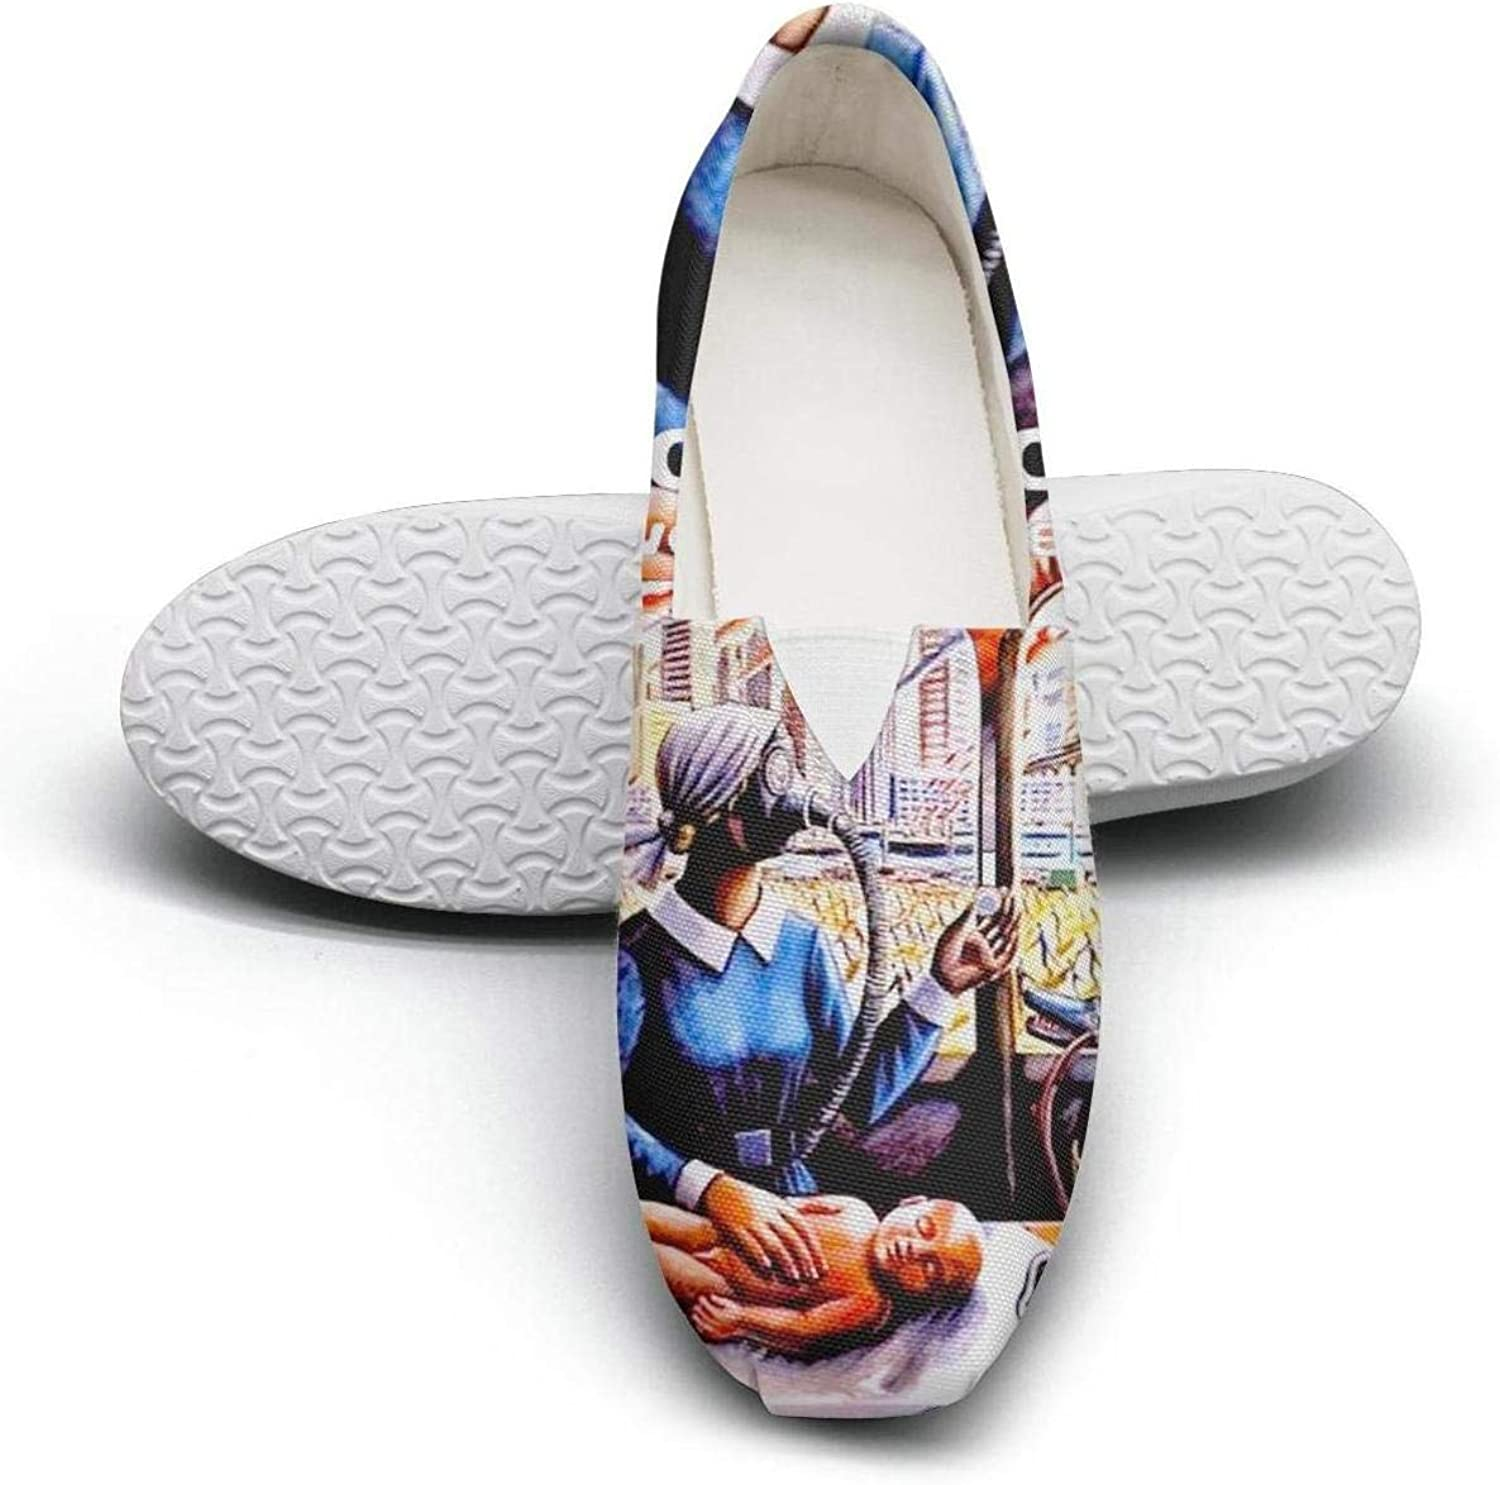 Designer Canvas Slip On Loafers shoes for Women Fashion Stylish Walking Low Top Sneaker shoes